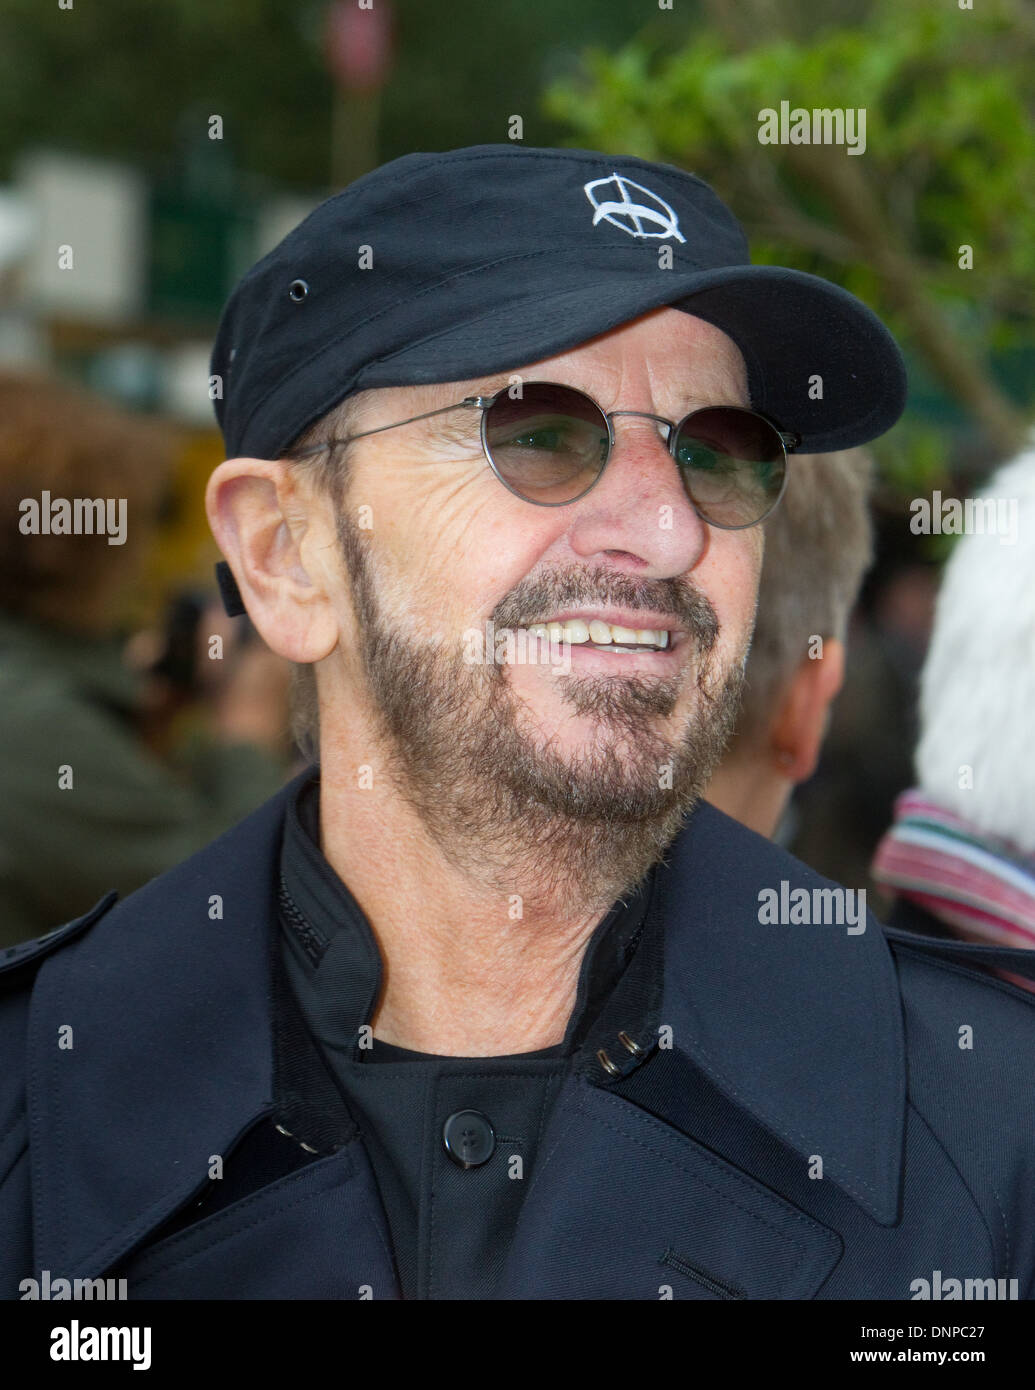 Ringo Starr ,Real name Richard Starkey,Drummer with The Beatles - Stock Image